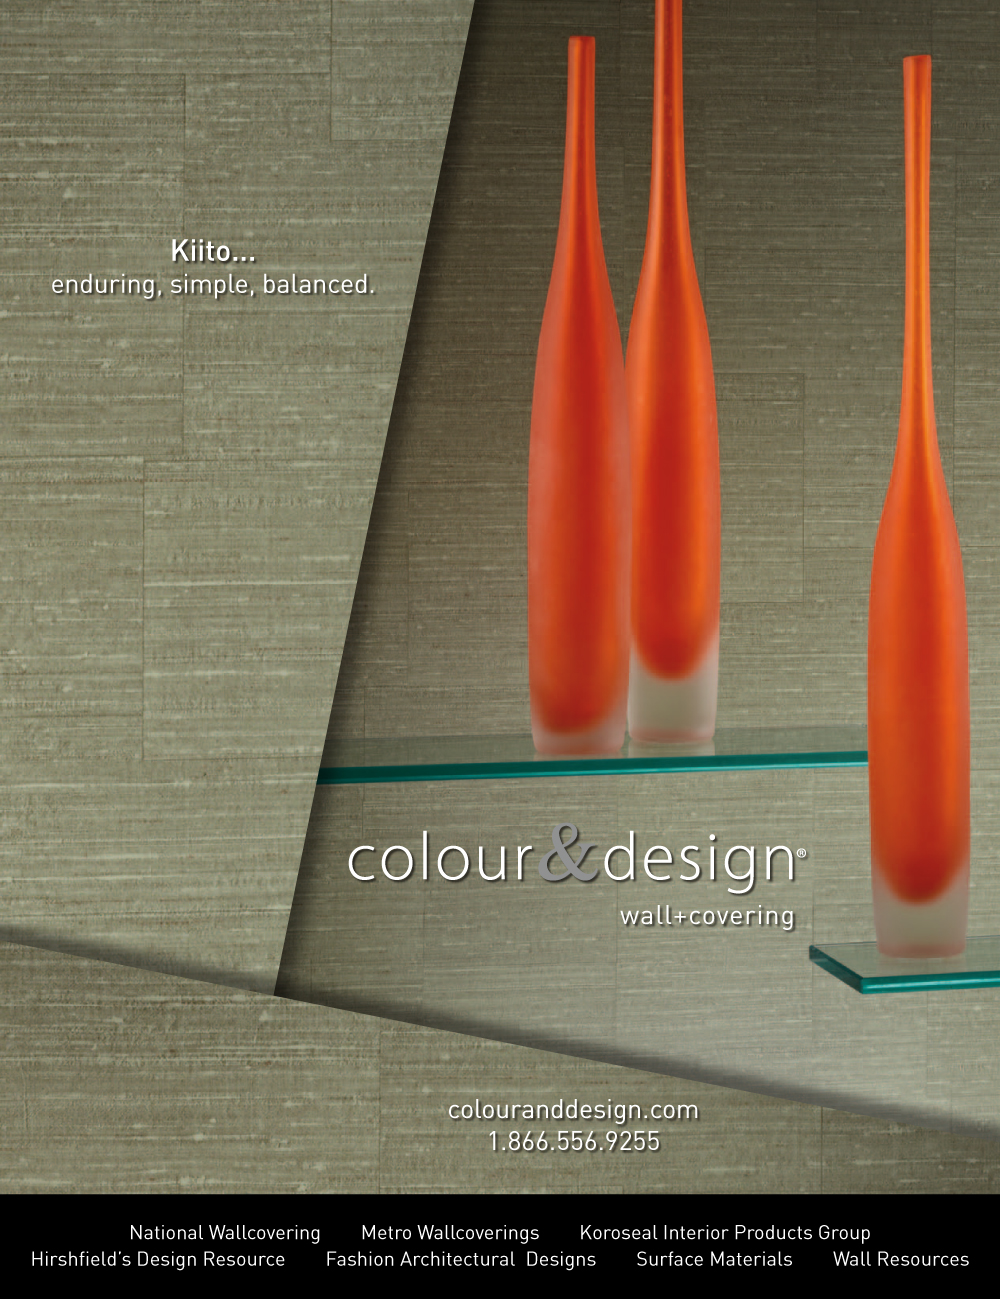 colour and design kiito picholine green commercial wall covering with sculptures